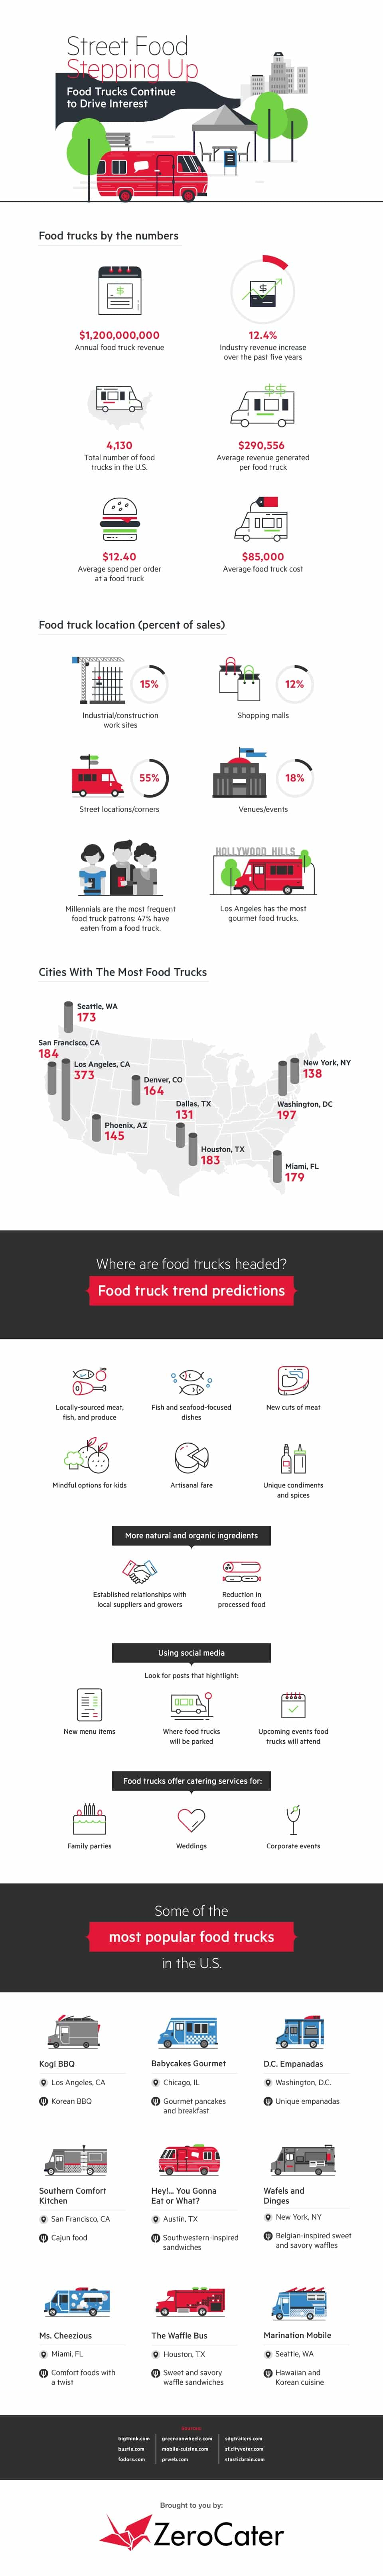 Food Trucks Are Not a Fad Infographic